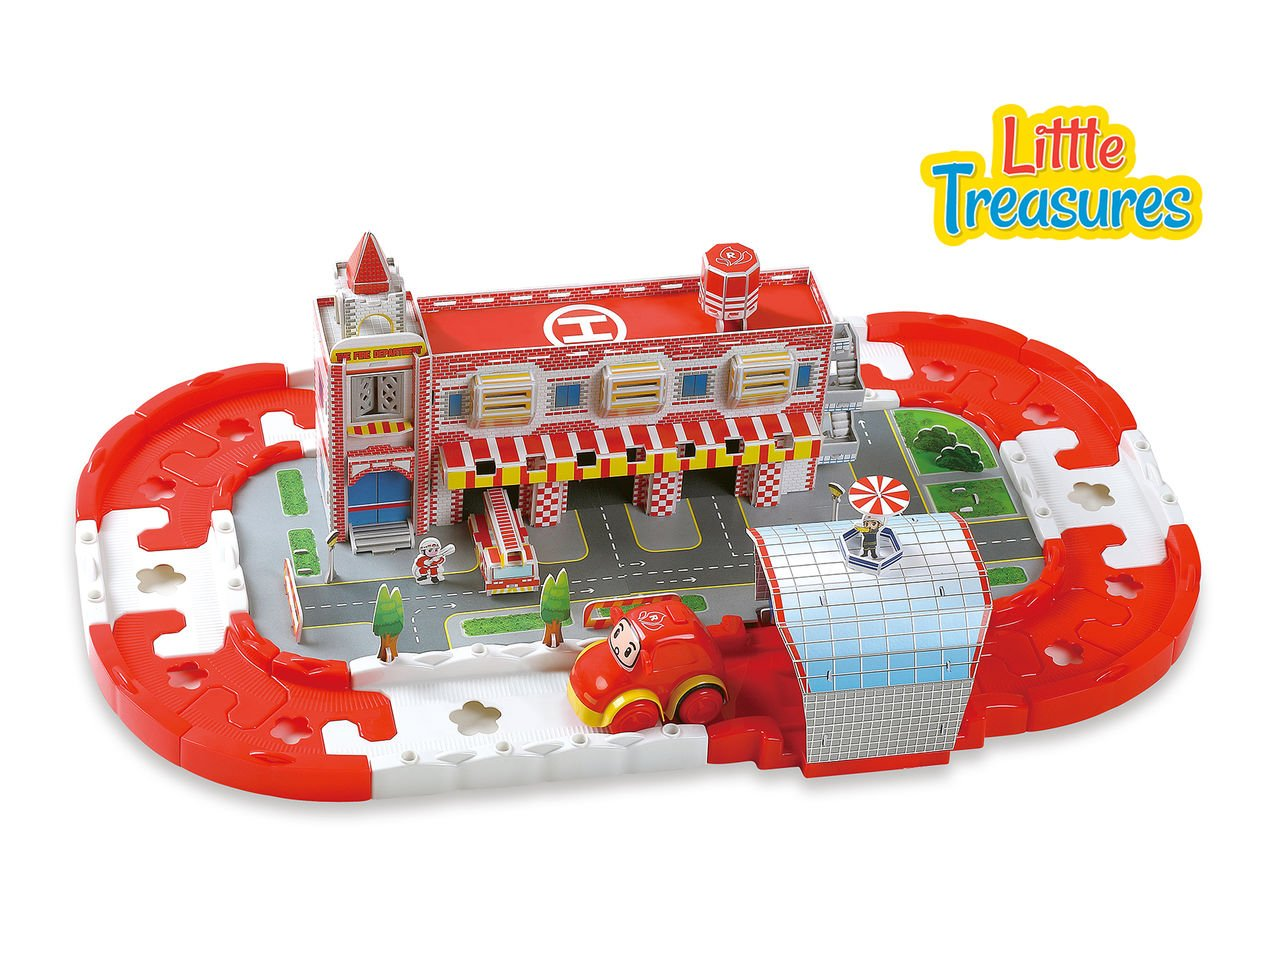 Suitable for Girls and Boys 18 months Little Treasures Kids Fire Station tracks Set Building Block Track Educational motor skills interlocking toy to help your child with assembly with Cars